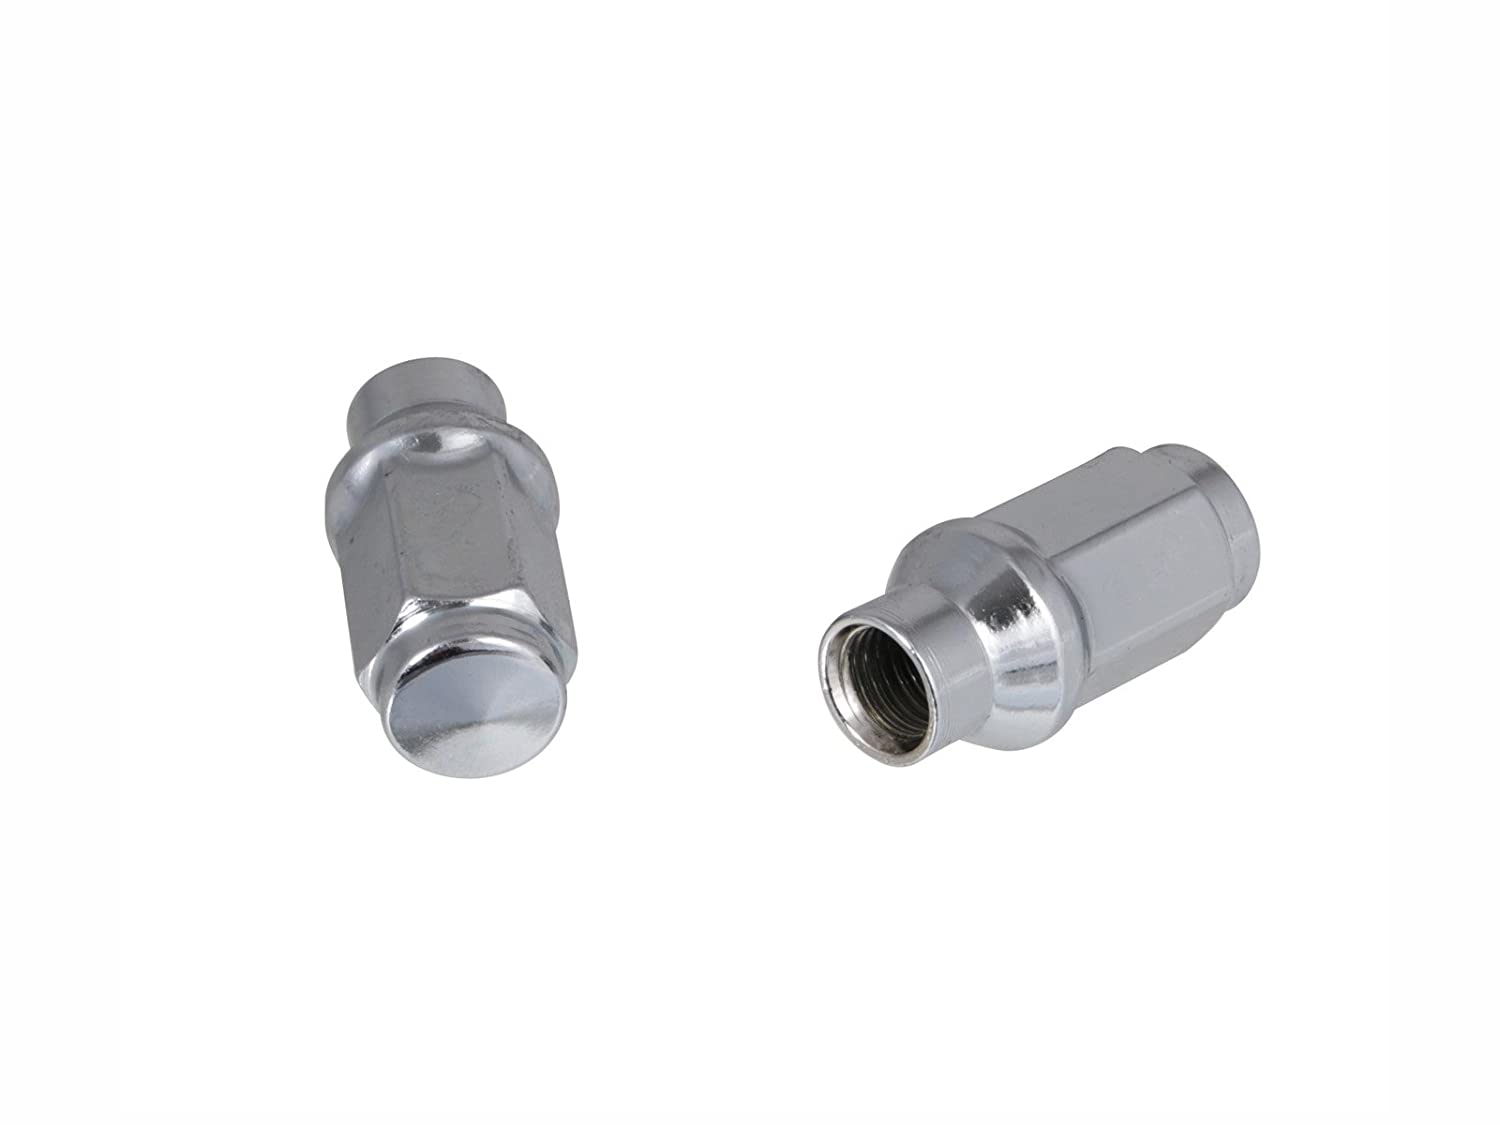 Cone Conical Taper Seat Shank UberTechnic Chrome Silver Bulge Lug Nuts Metric 12x1.5 Thread Size 1.75 Length for 6Lug Vehicles Wheels Precision European Motorwerks Closed End 24 ET Style